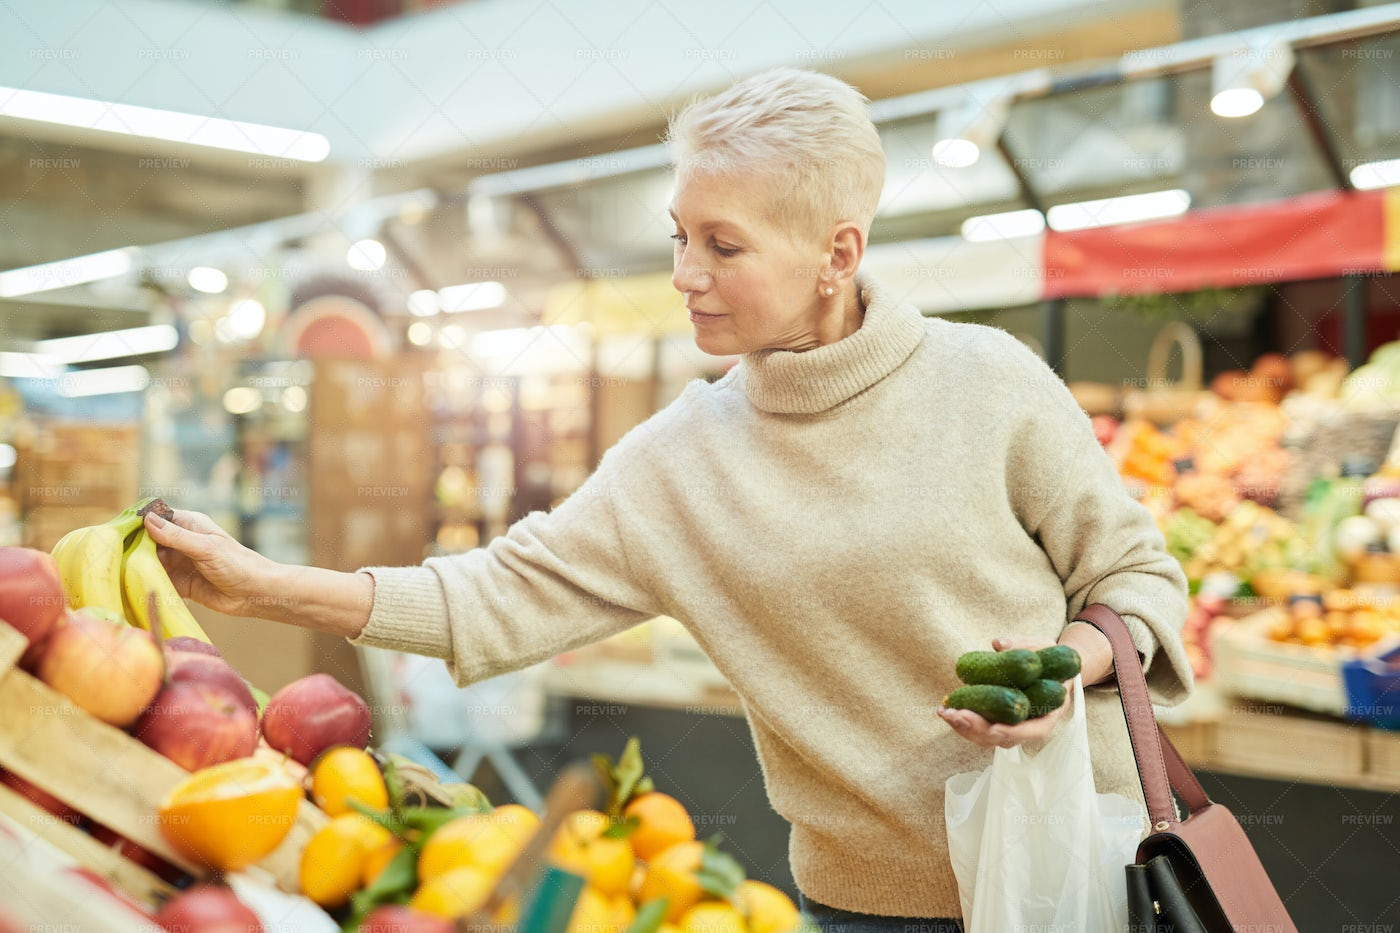 Woman Grocery Shopping: Stock Photos